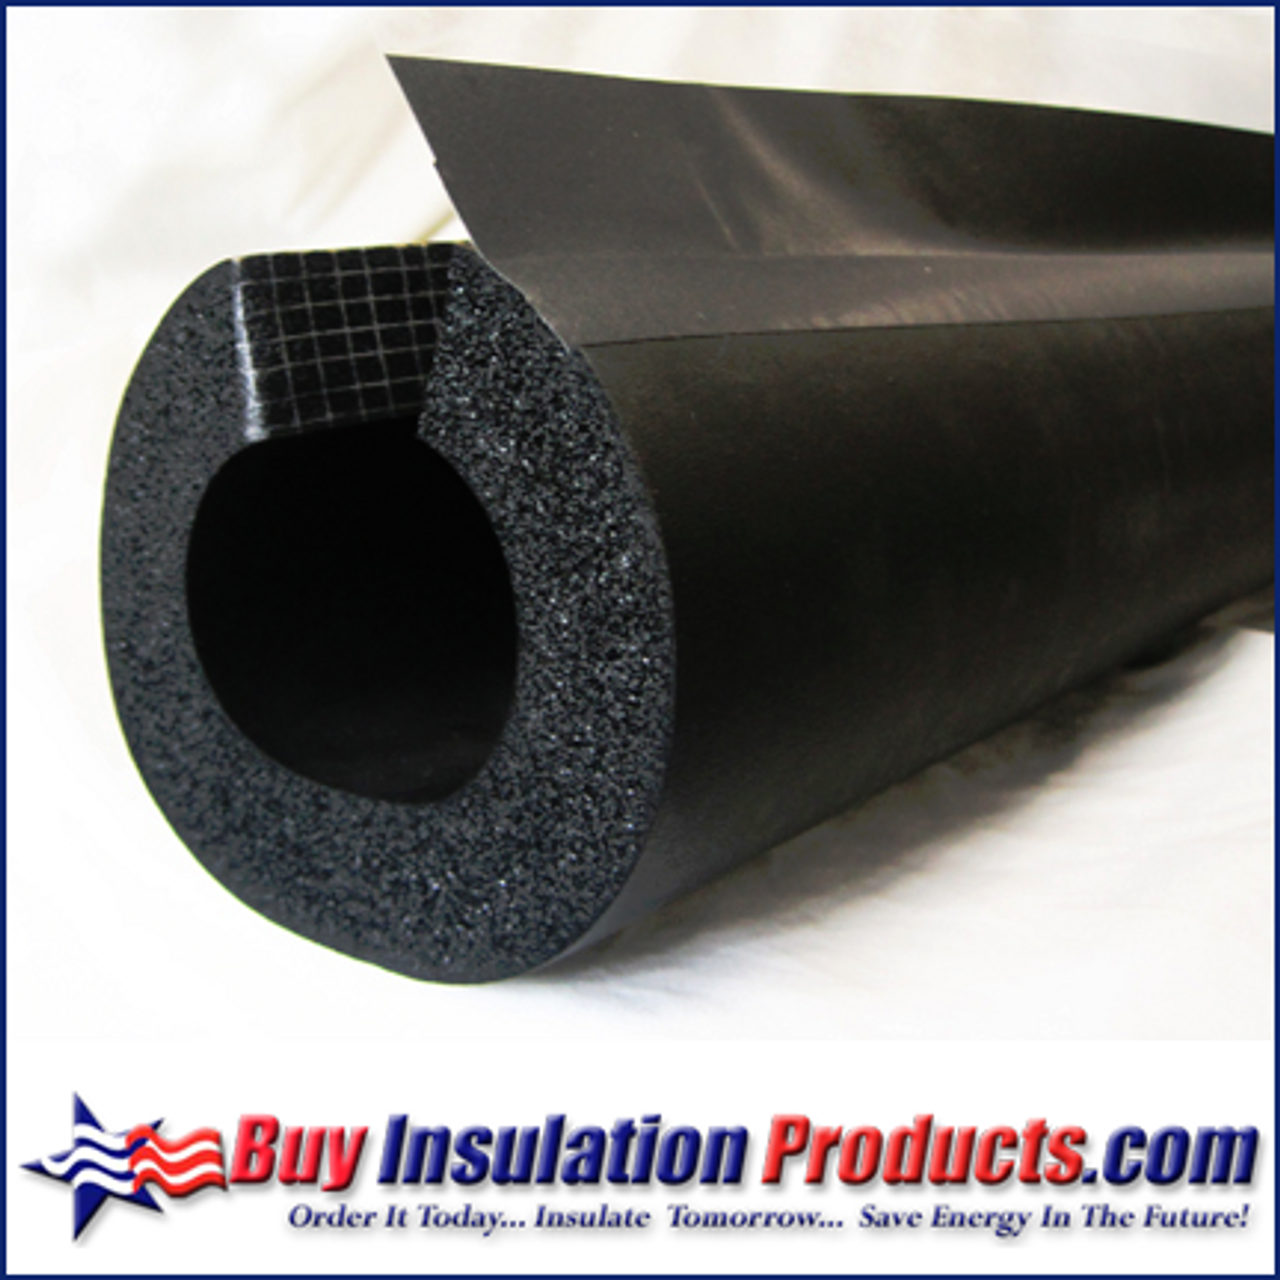 5//8 x 1//2 Elastomeric Elbow Pipe Fitting Insulation 1//2 Wall